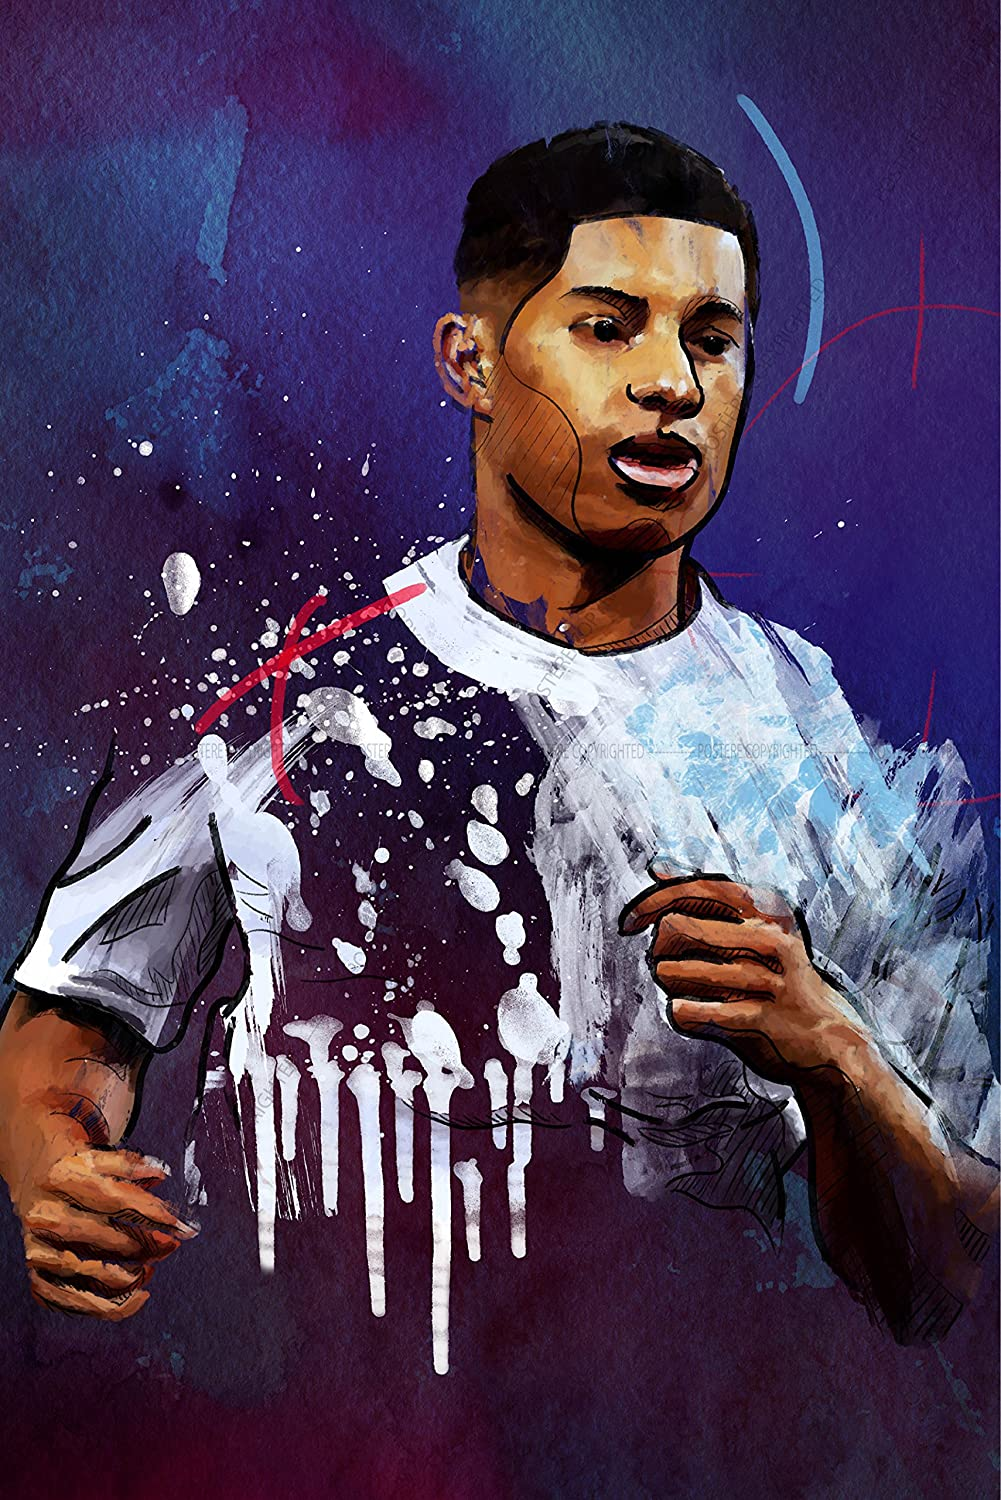 Postere Marcus Rashford Poster Fanart Painting Styled Manchester United 12 X 18 Inches English Professional Footballer England National Team Number 19 Amazon In Home Kitchen